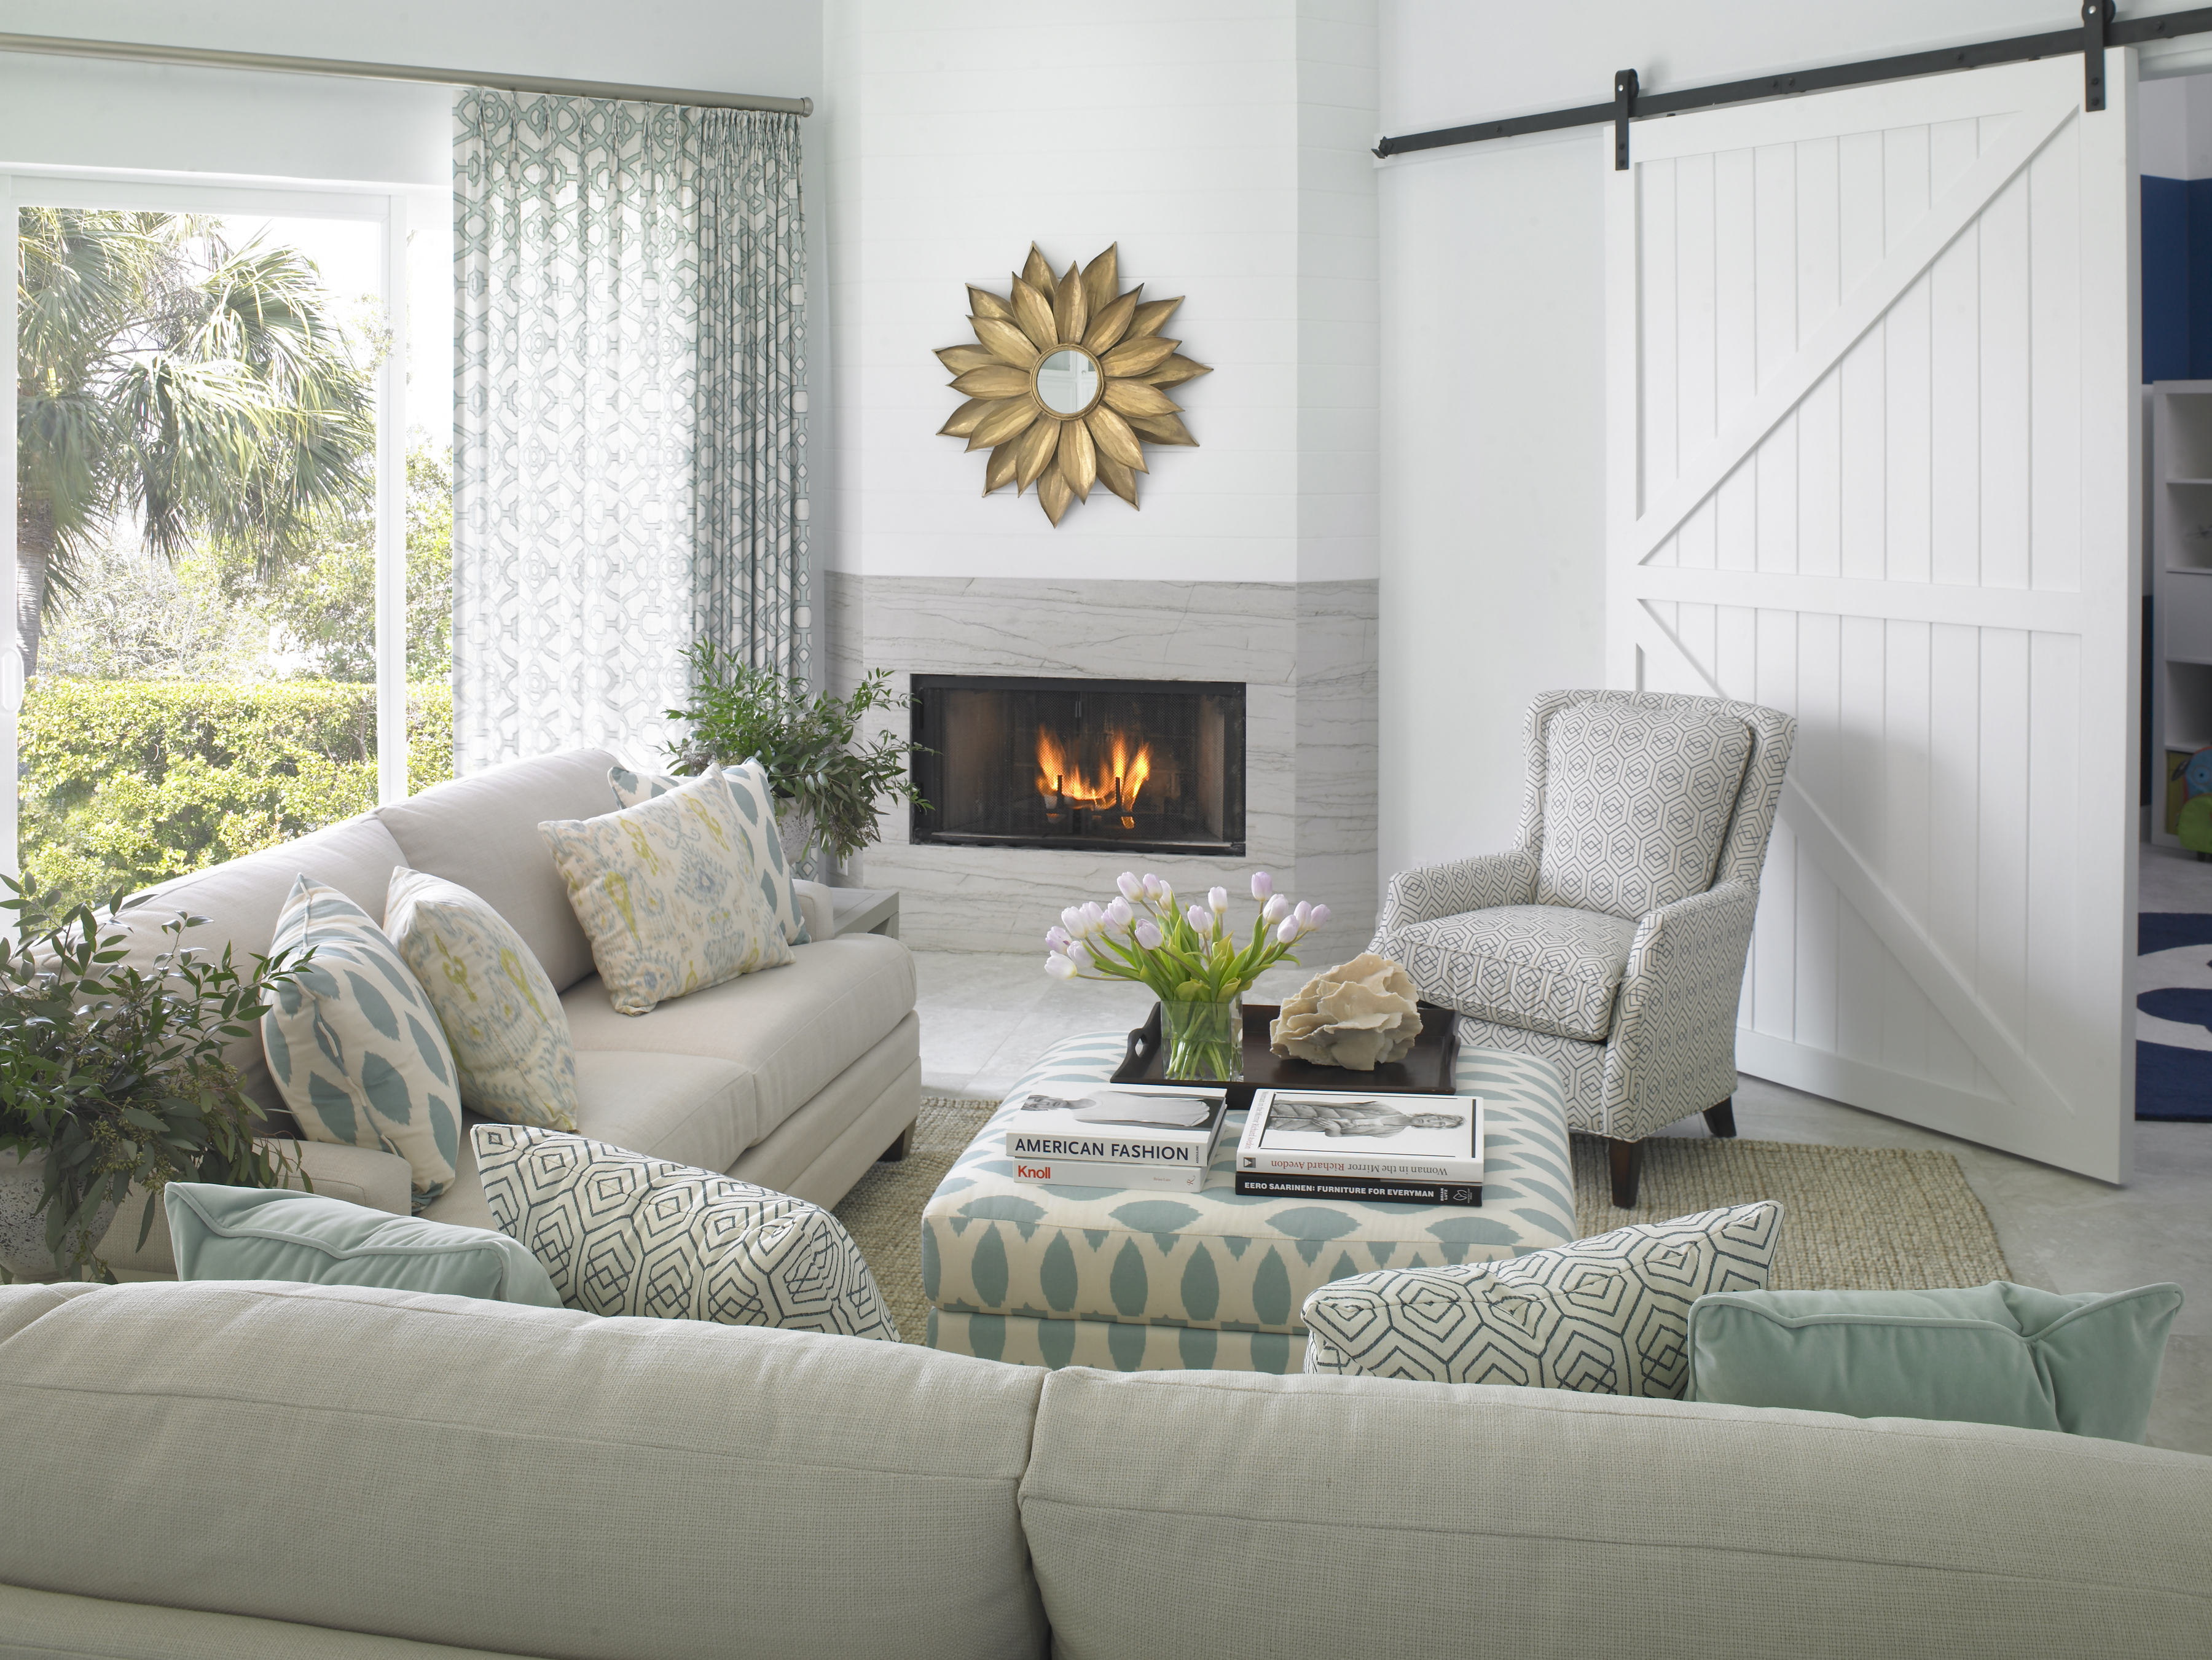 The enclosed fireplace has a gold floral mirror above it. A sliding barn door painted white leads into the playroom. The beautiful view includes the water, palm trees, and lots of greenery.